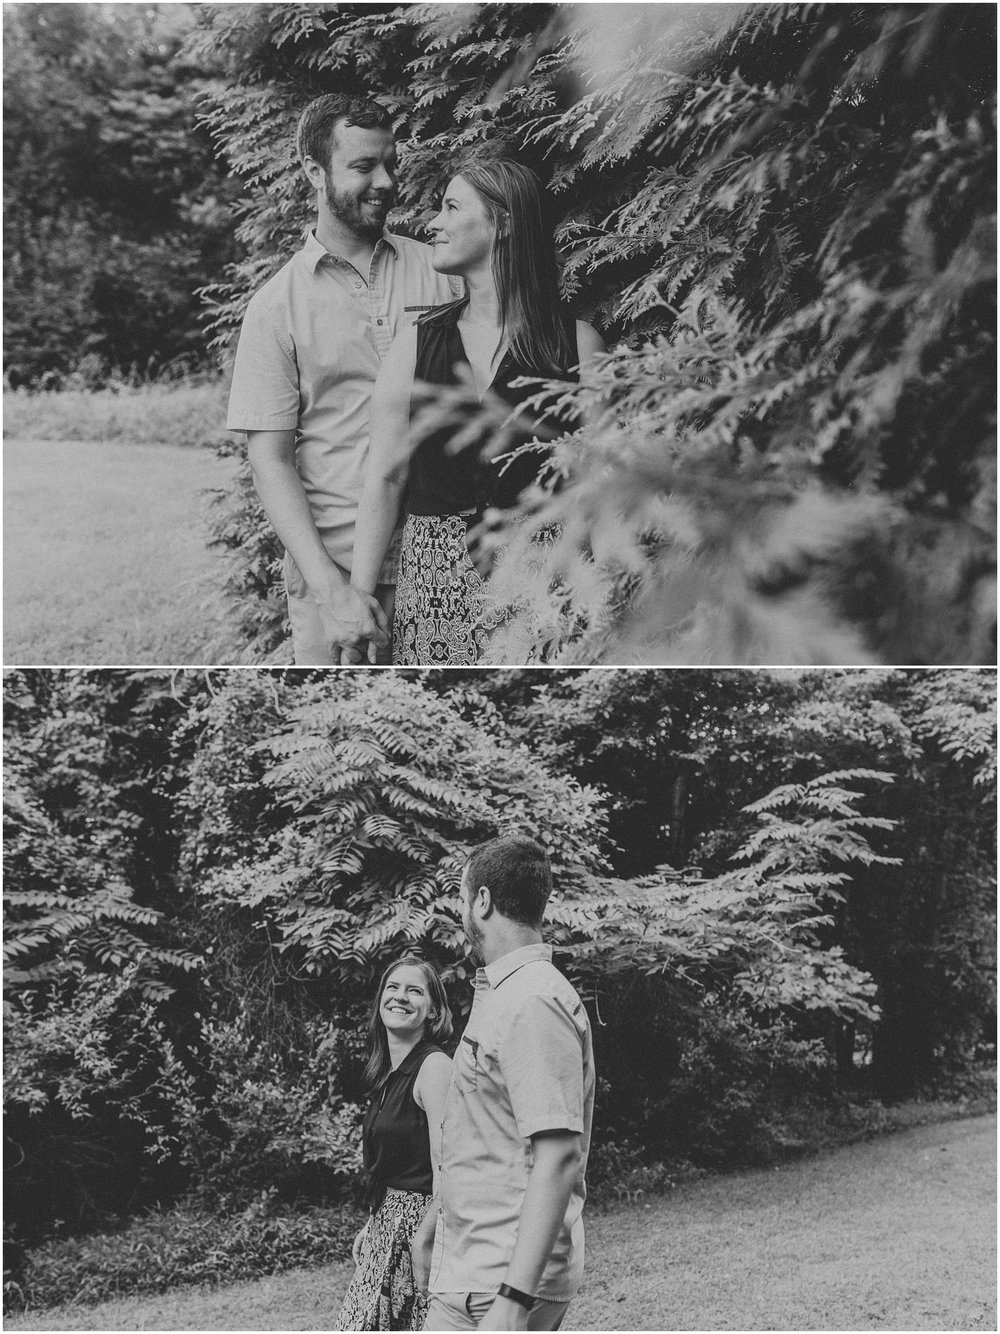 lifestyle-anniversary-engagement-photo session-rv-camping-road trip-vintage trailer-camping-outdoor photos_0272.jpg